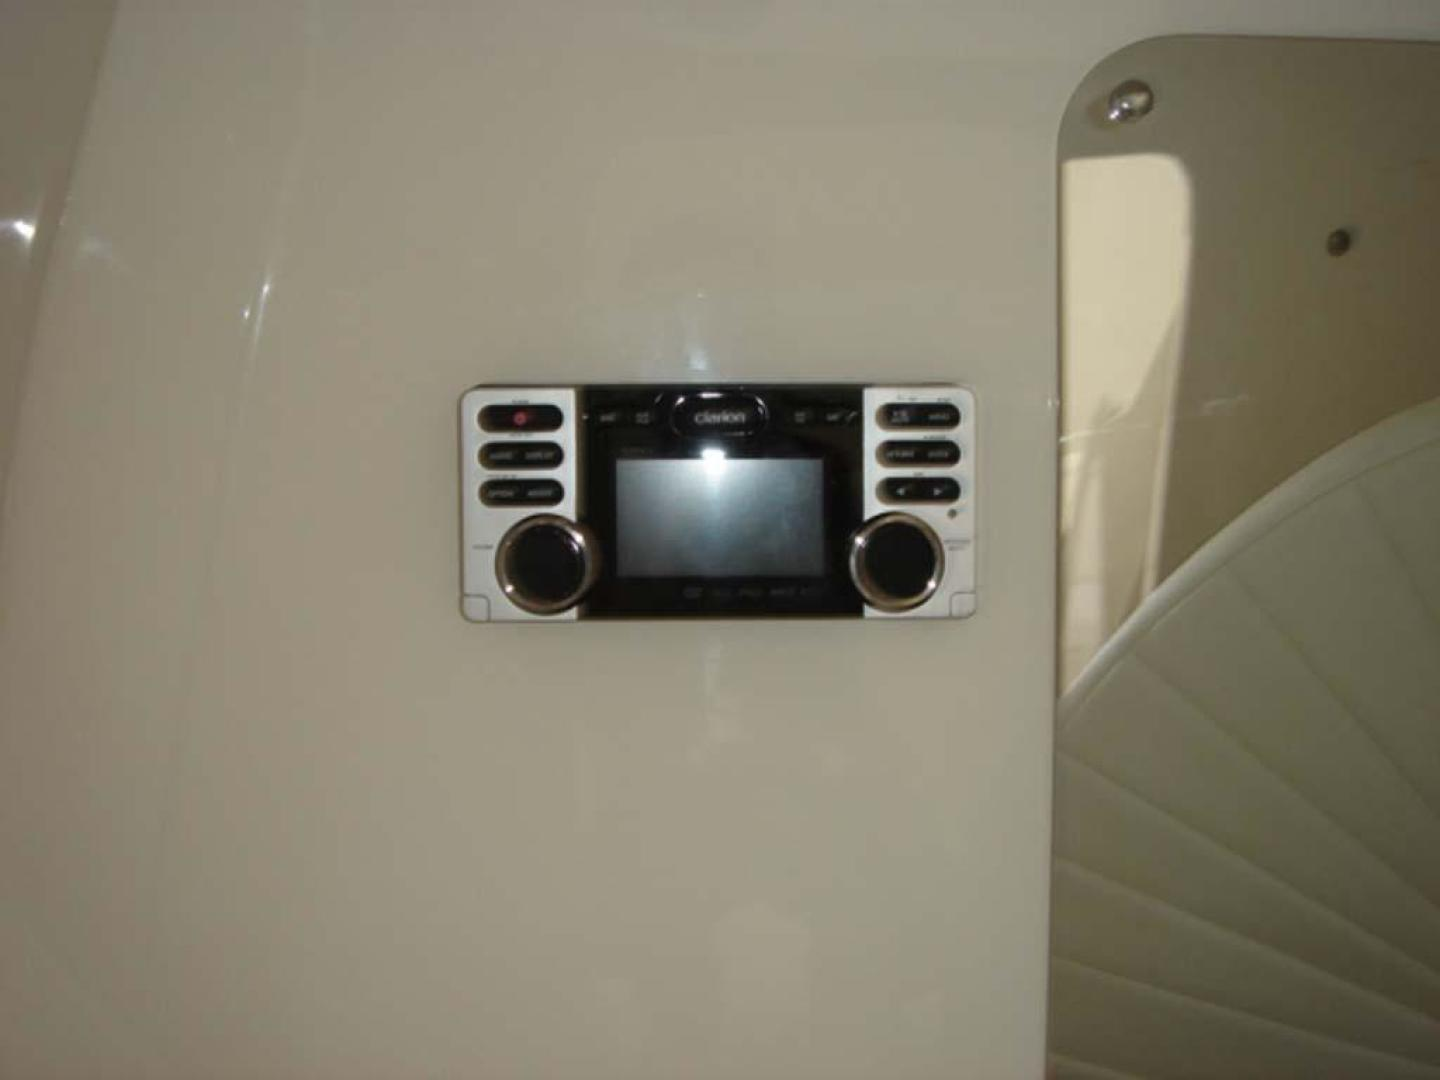 Intrepid-327 Center Console 2014-Deep Ship Palm Beach Gardens-Florida-United States-924014 | Thumbnail